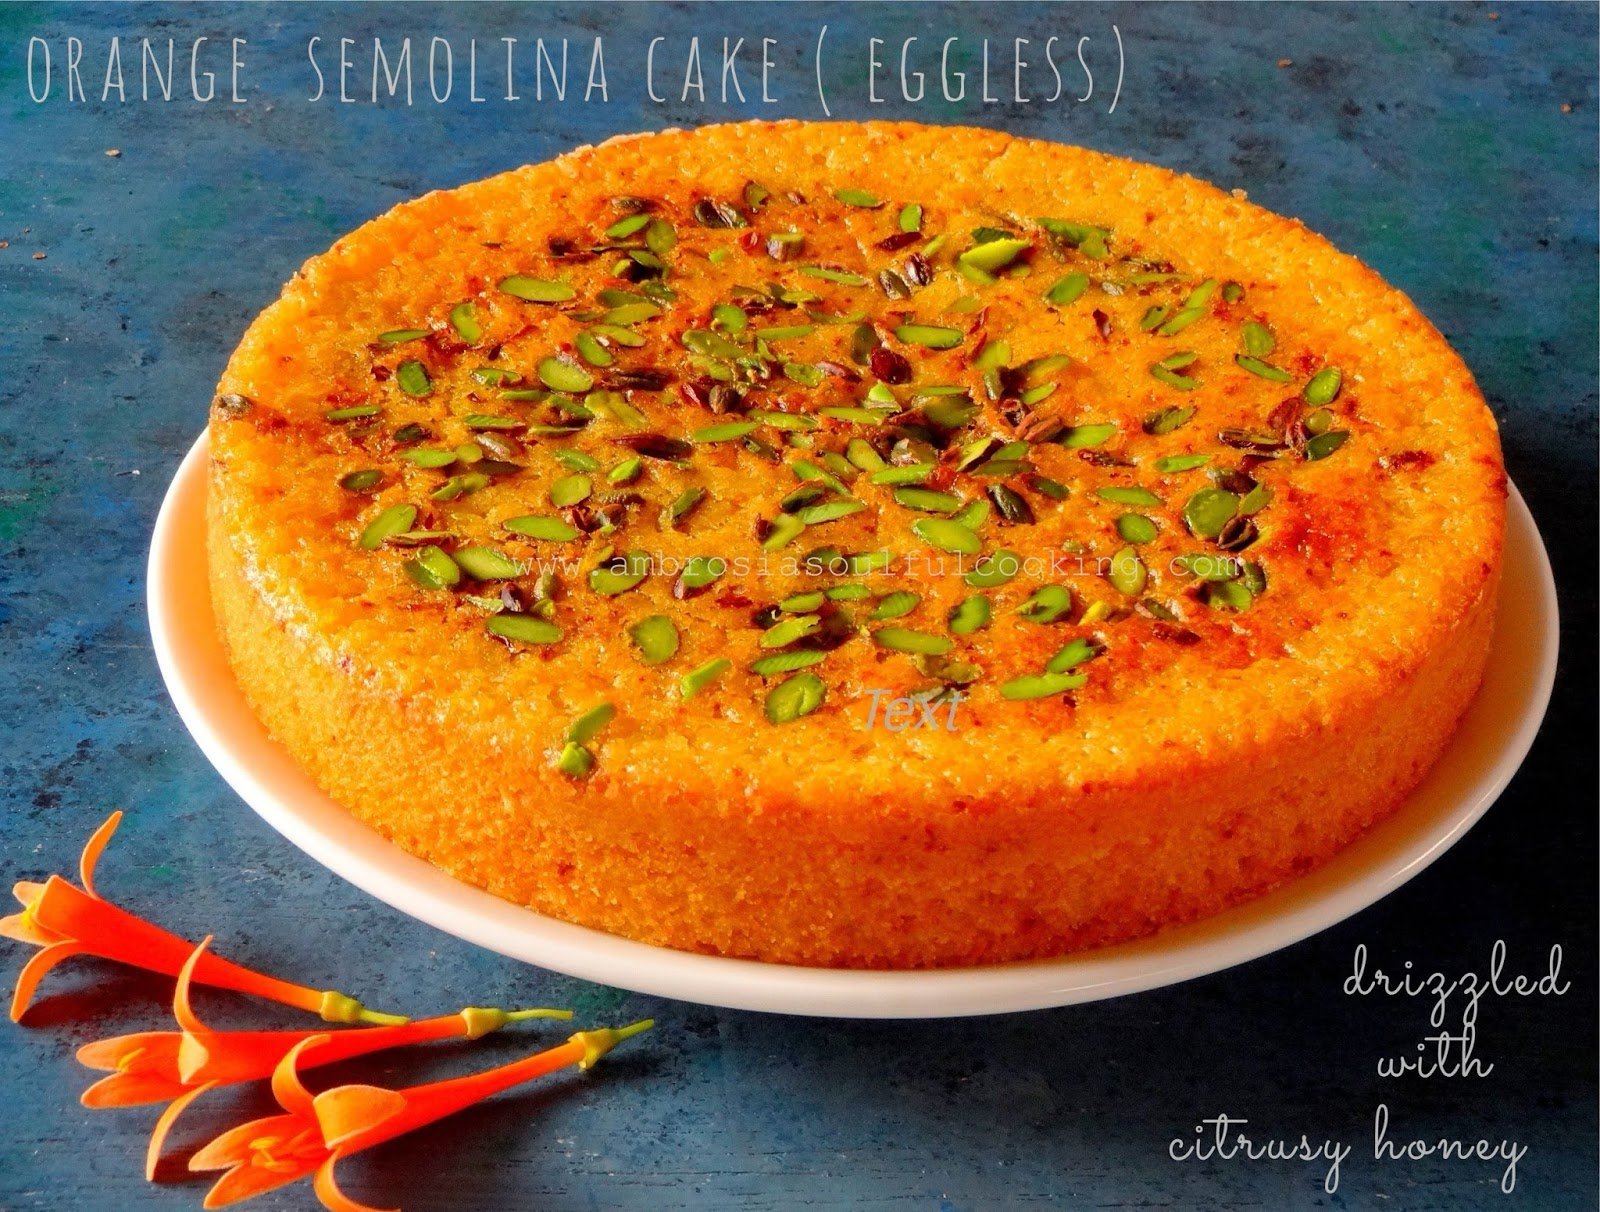 Diet Cake Recipes Low Fat Eggless: Orange Semolina Cake (Eggless And Low Fat) Drizzled With